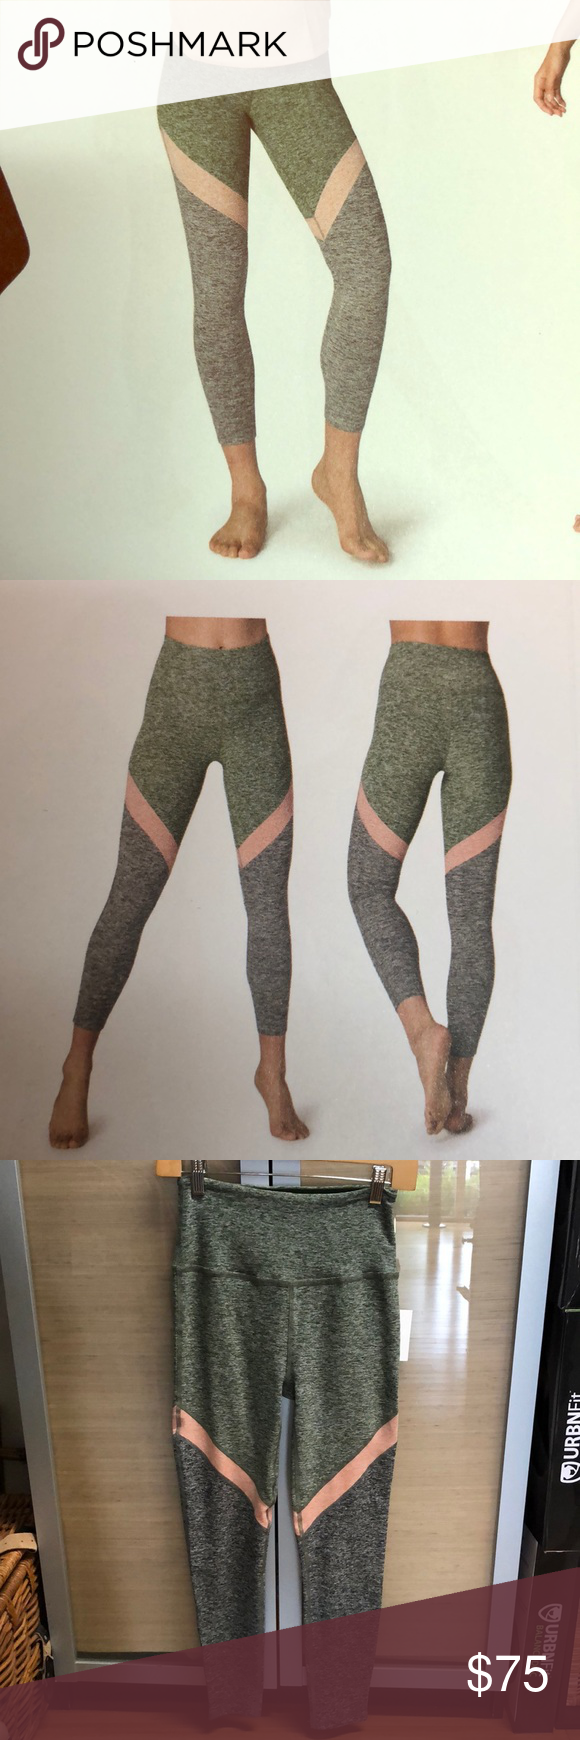 3981b9cb3953f Beyond Yoga Spacedye High Waisted Midi Legging Beyond Yoga Spacedye High  Waisted Midi Legging. Color/Print: Jungle Palm Tri-Panel (green, pink & grey  ...